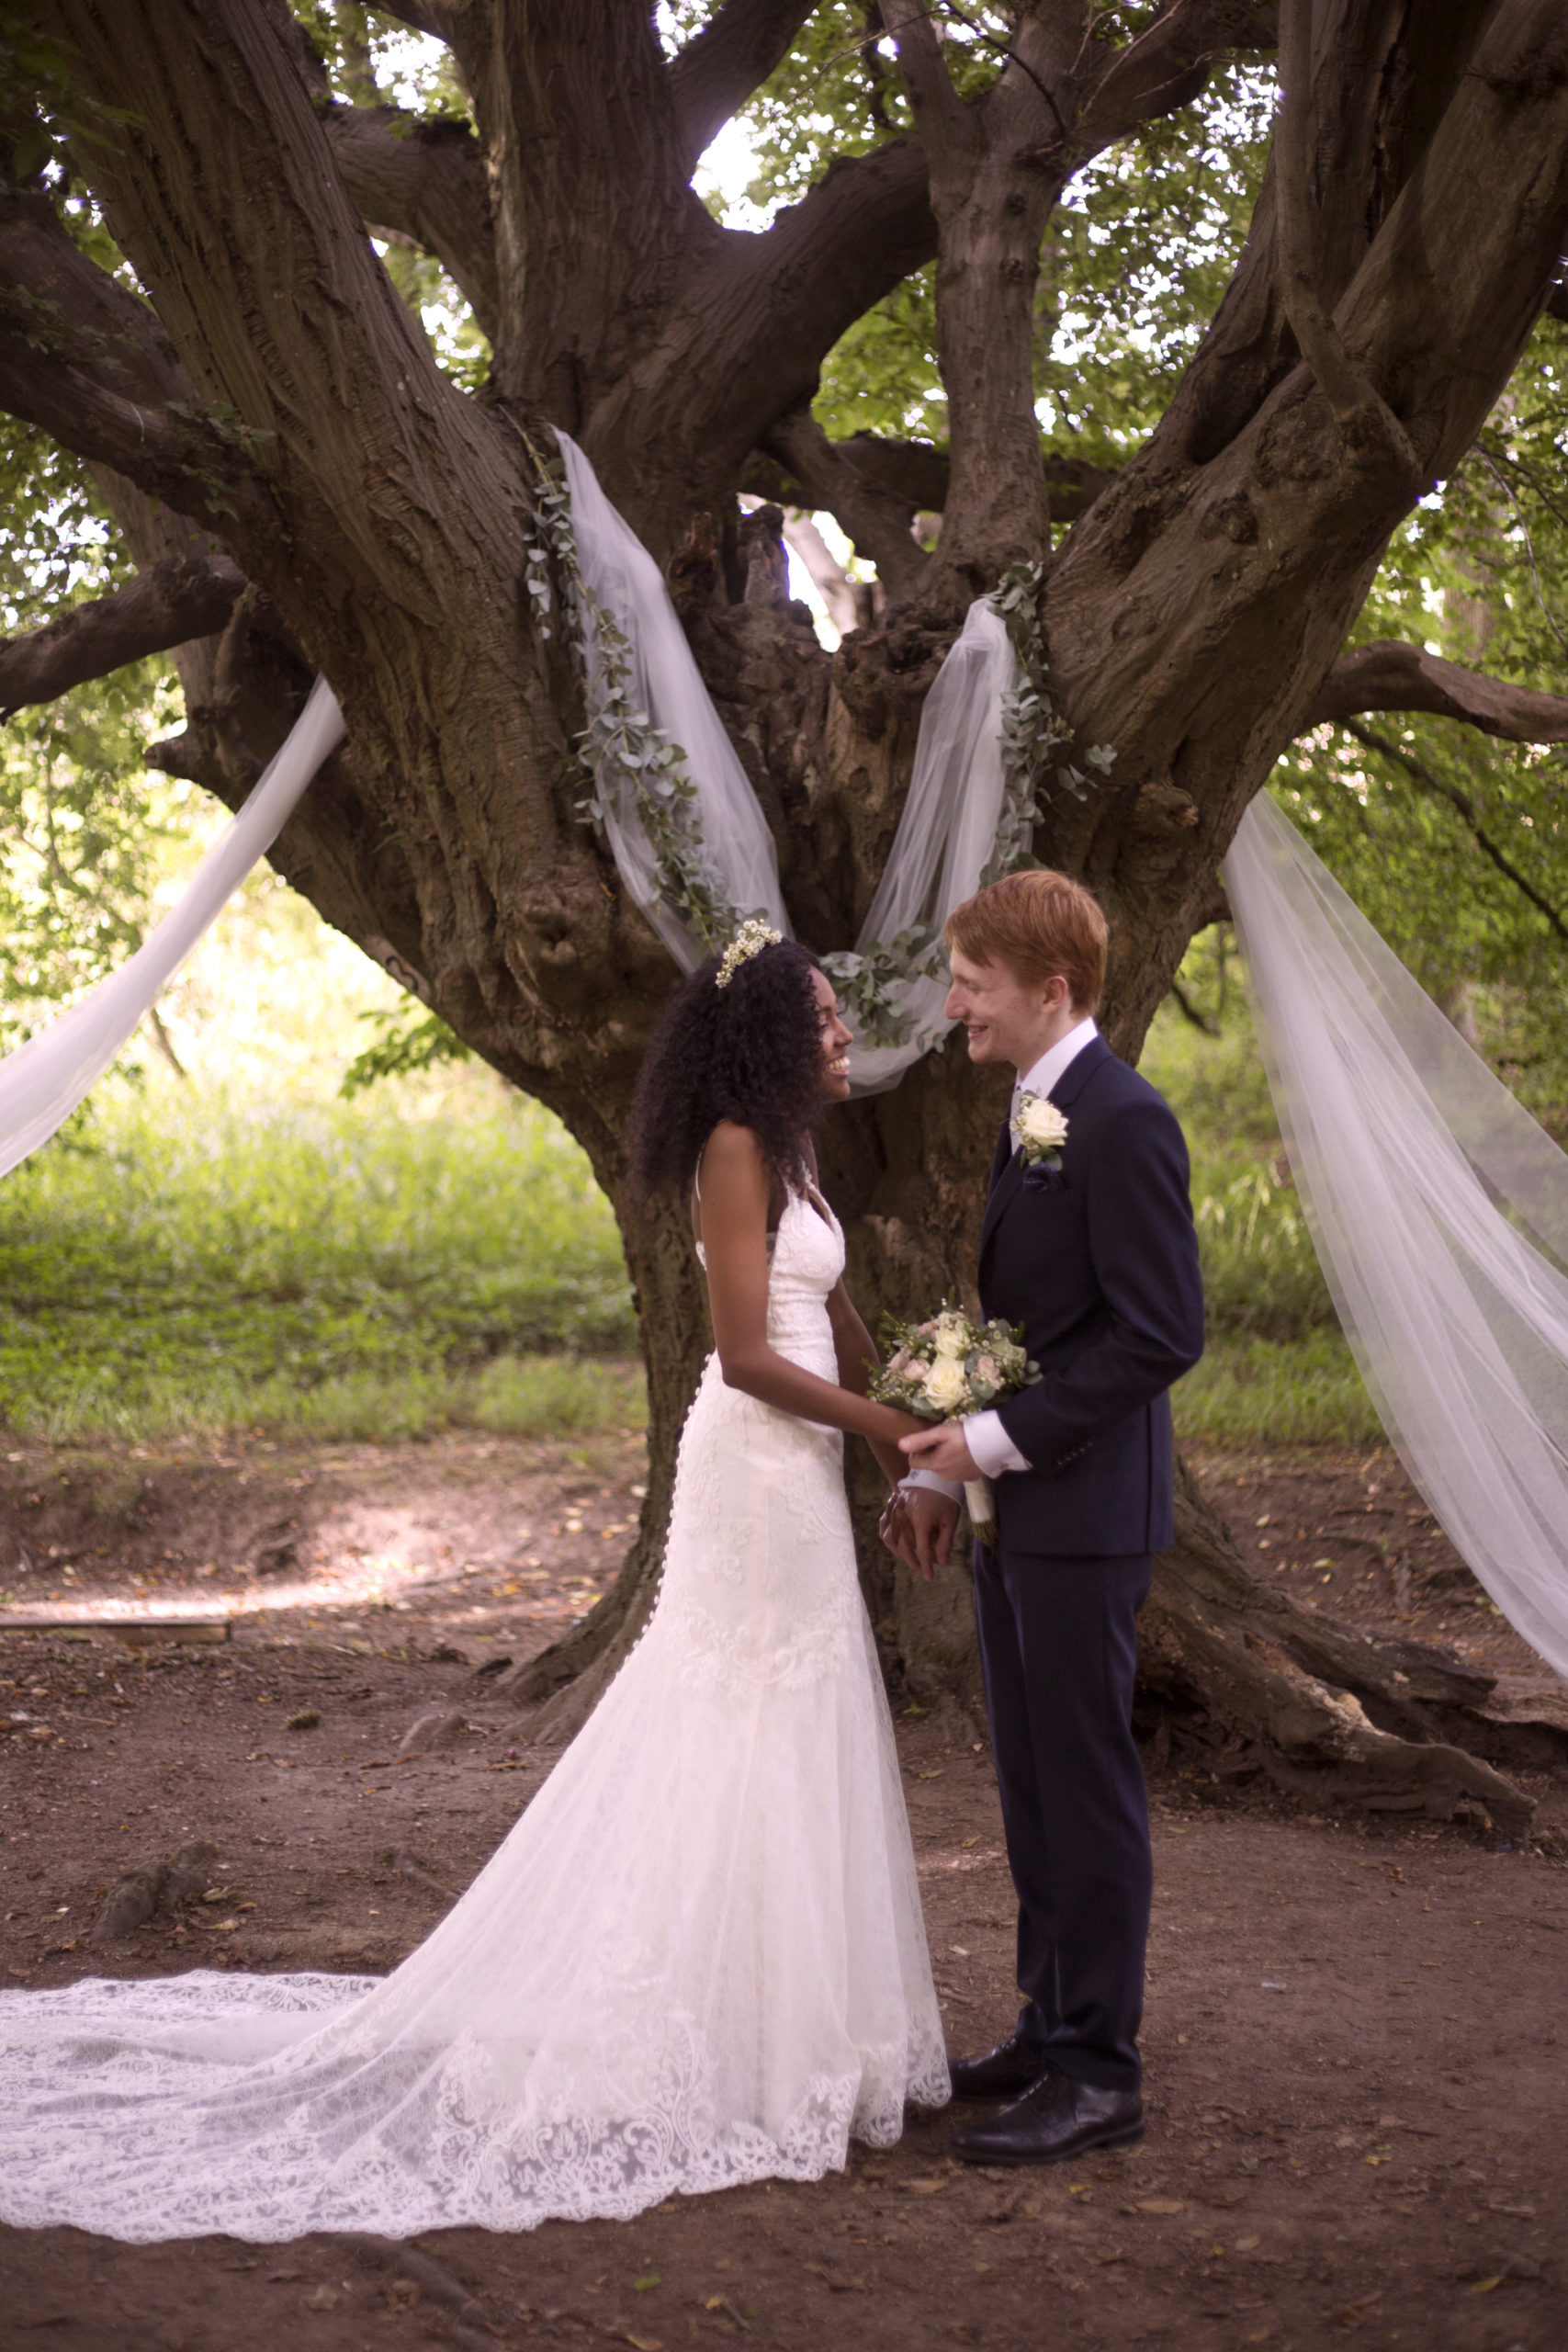 Bride and groom stand in front of the oak tree with hanging organza decorations outdoor woodland wedding photographer